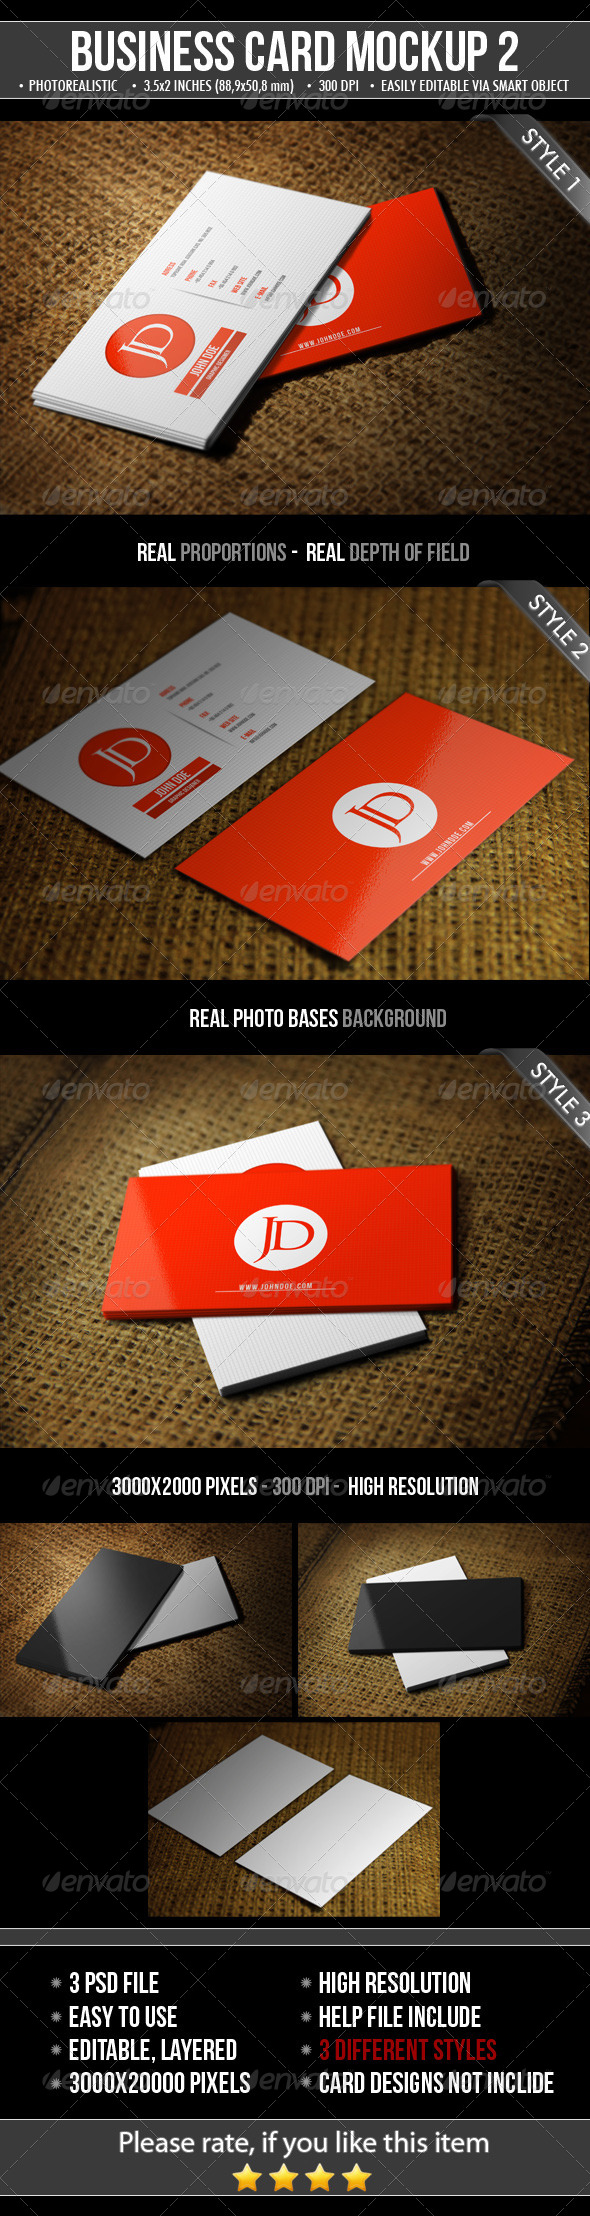 3 Realistic Business Card Mock-Up by Mejora | GraphicRiver